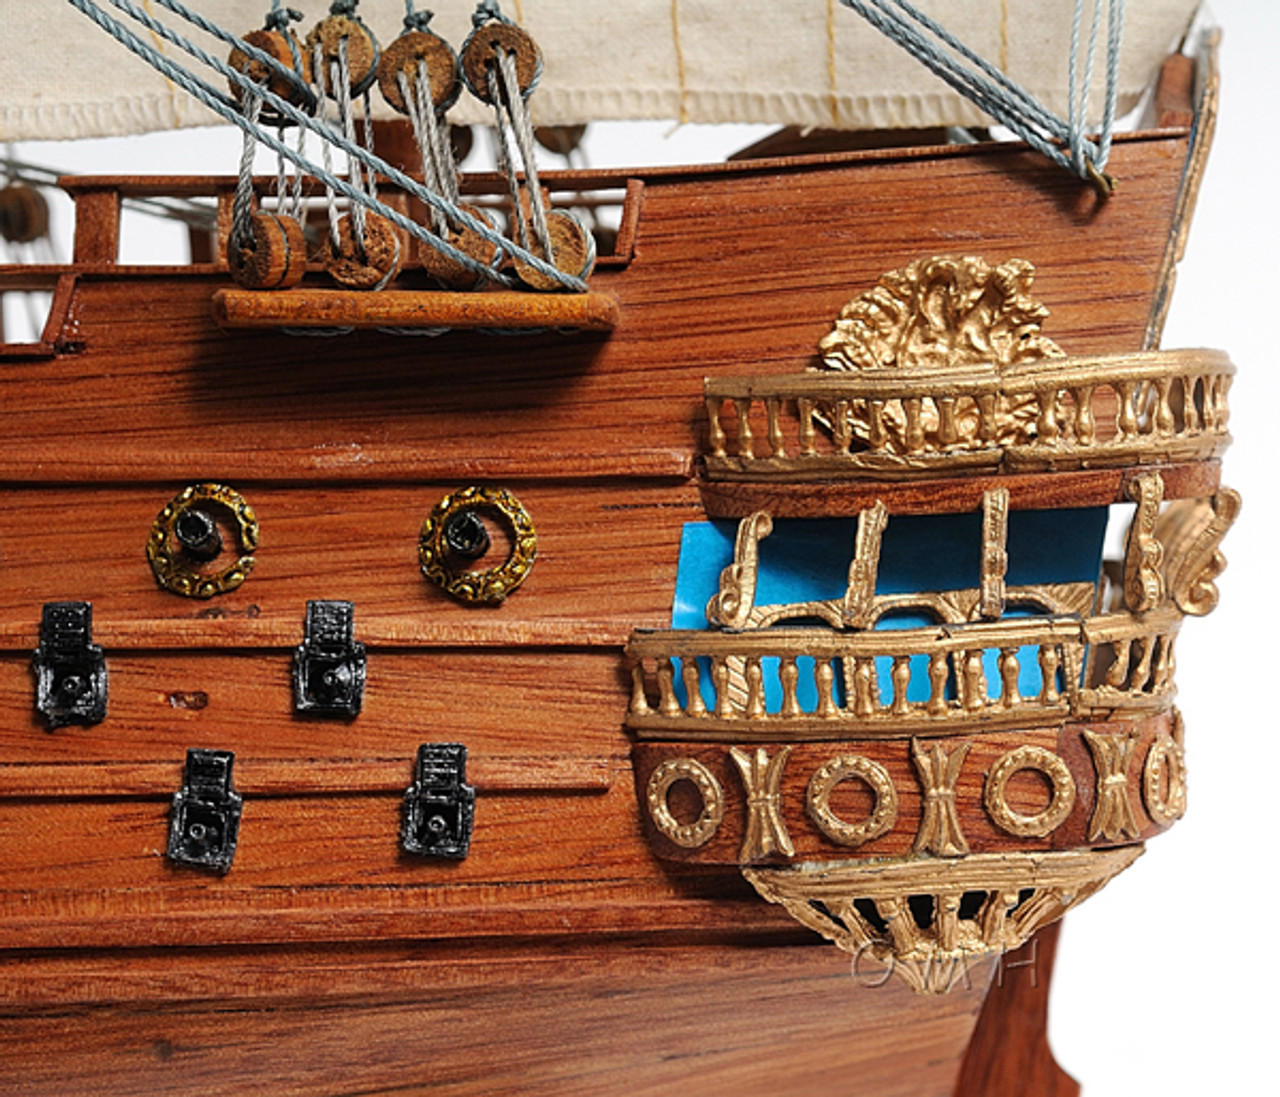 San Felipe Spanish Galleon Ship Model Display Case